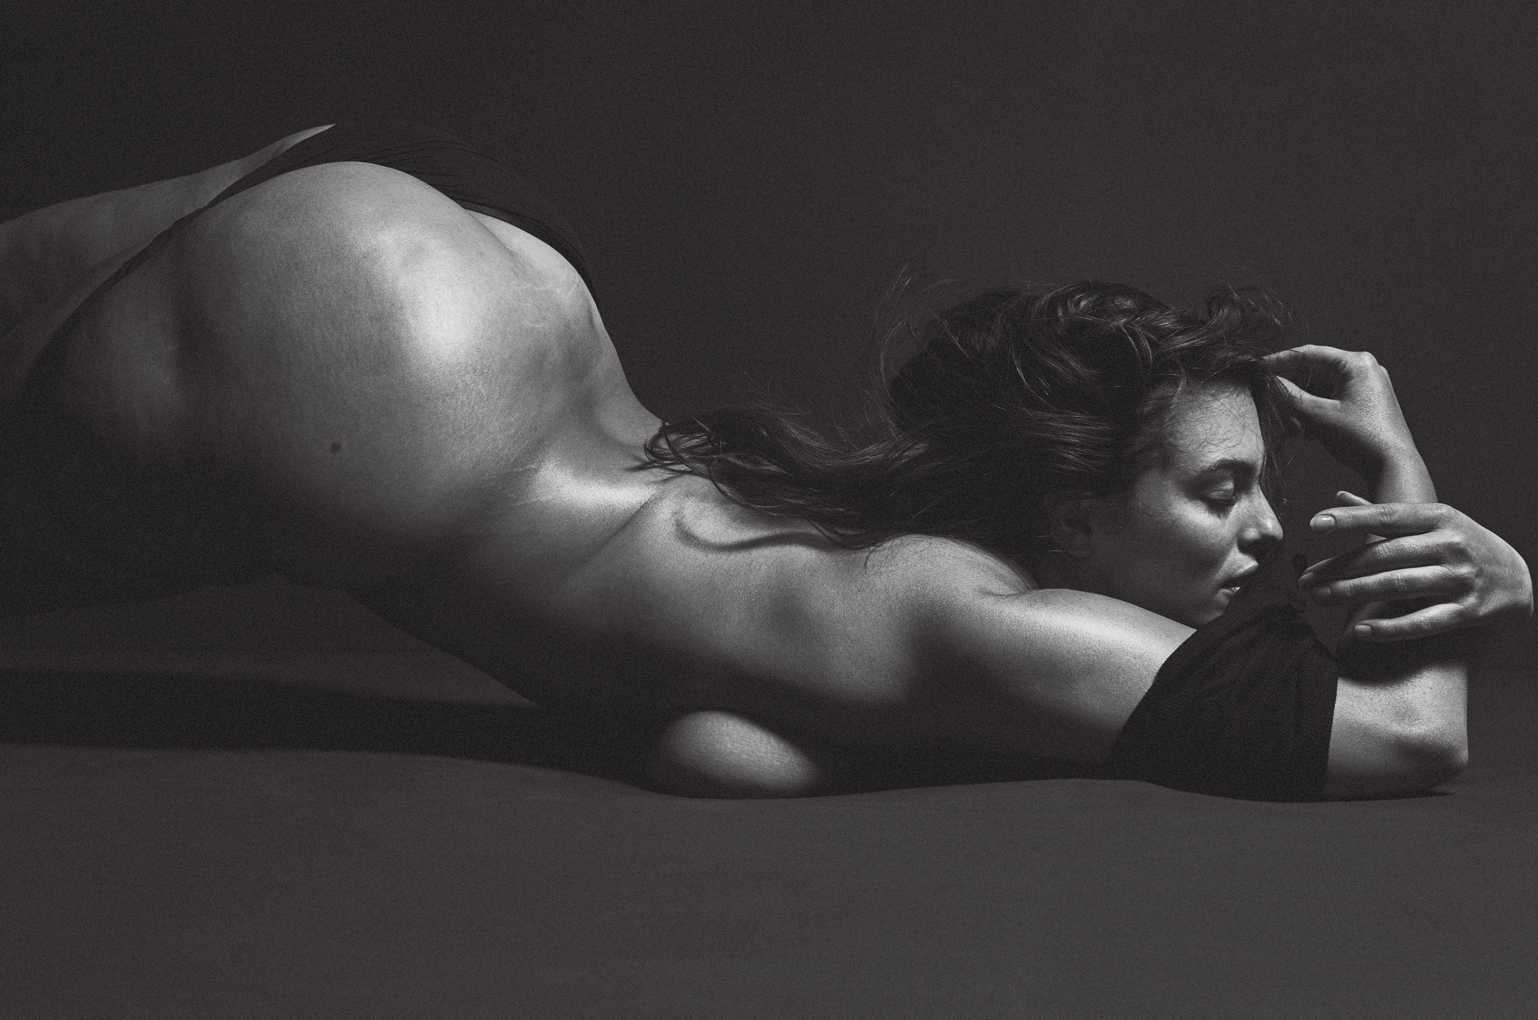 Ashley-Graham-Photoshoot-By-Mario-Sorrenti-For-V-Magazine-May-2017-1